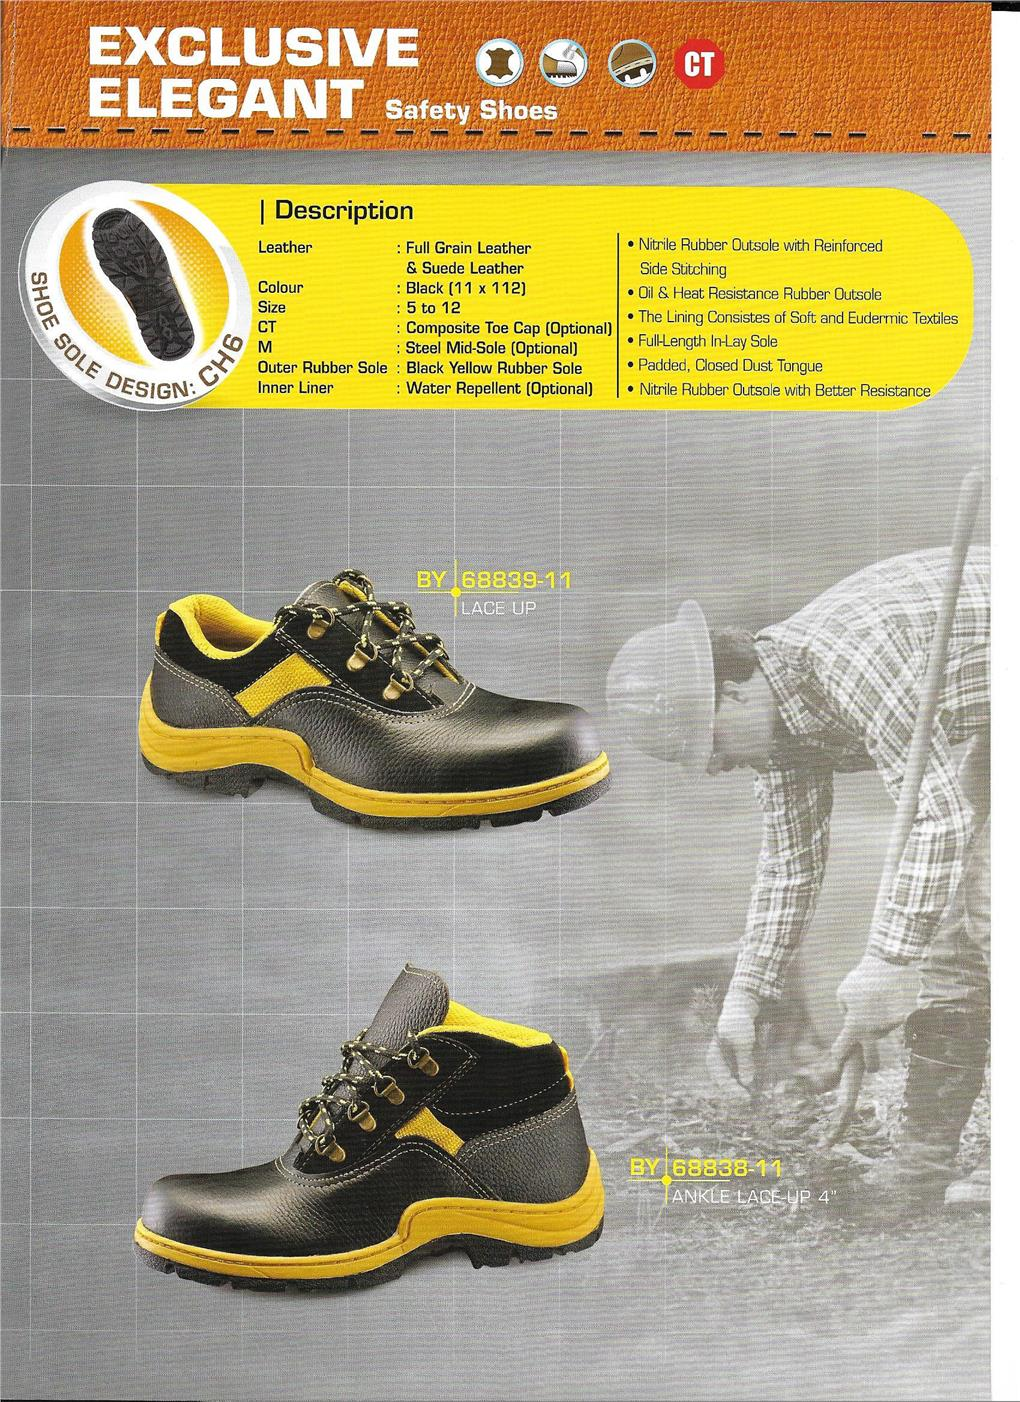 fb9adf02778d Exclusive safety shoes for order 20 (end 3 17 2020 7 15 PM)